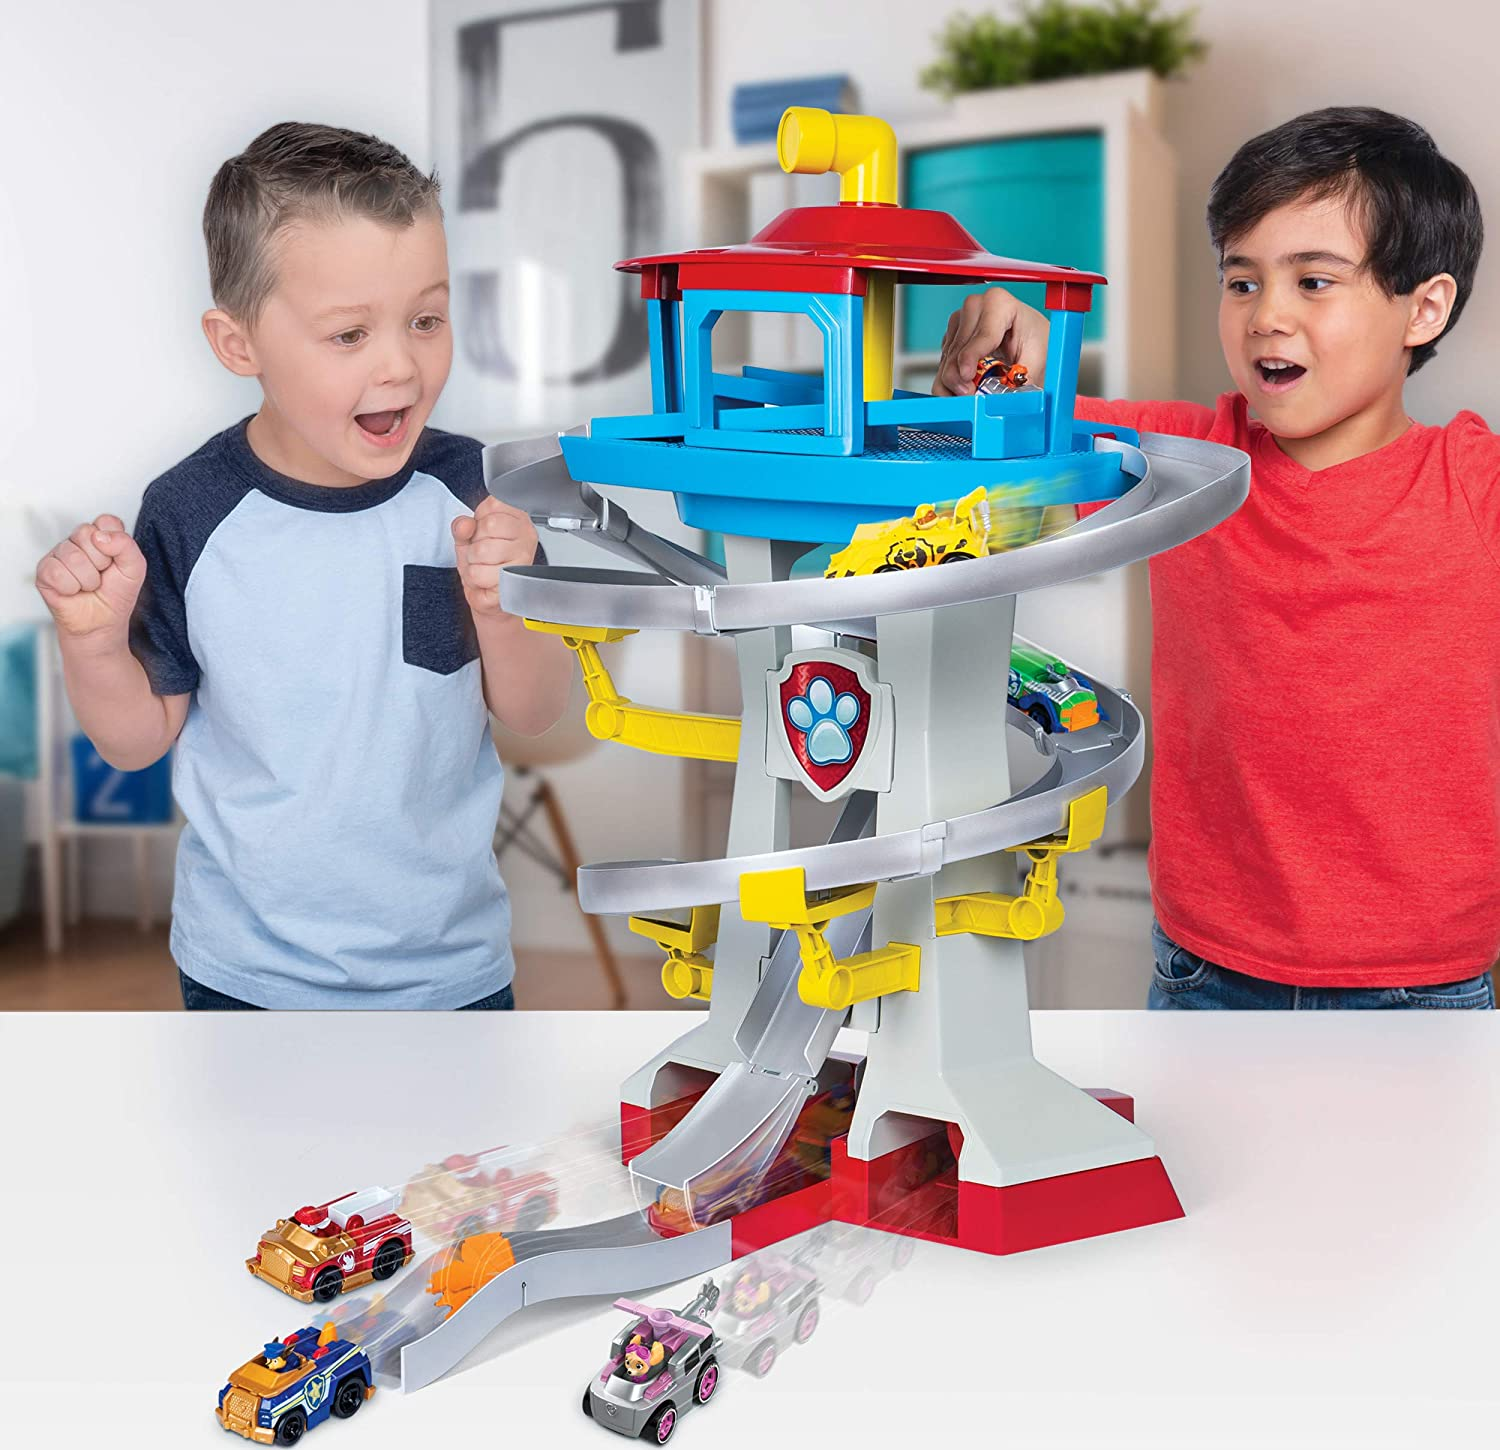 Paw Patrol Headquarters and Vehicles